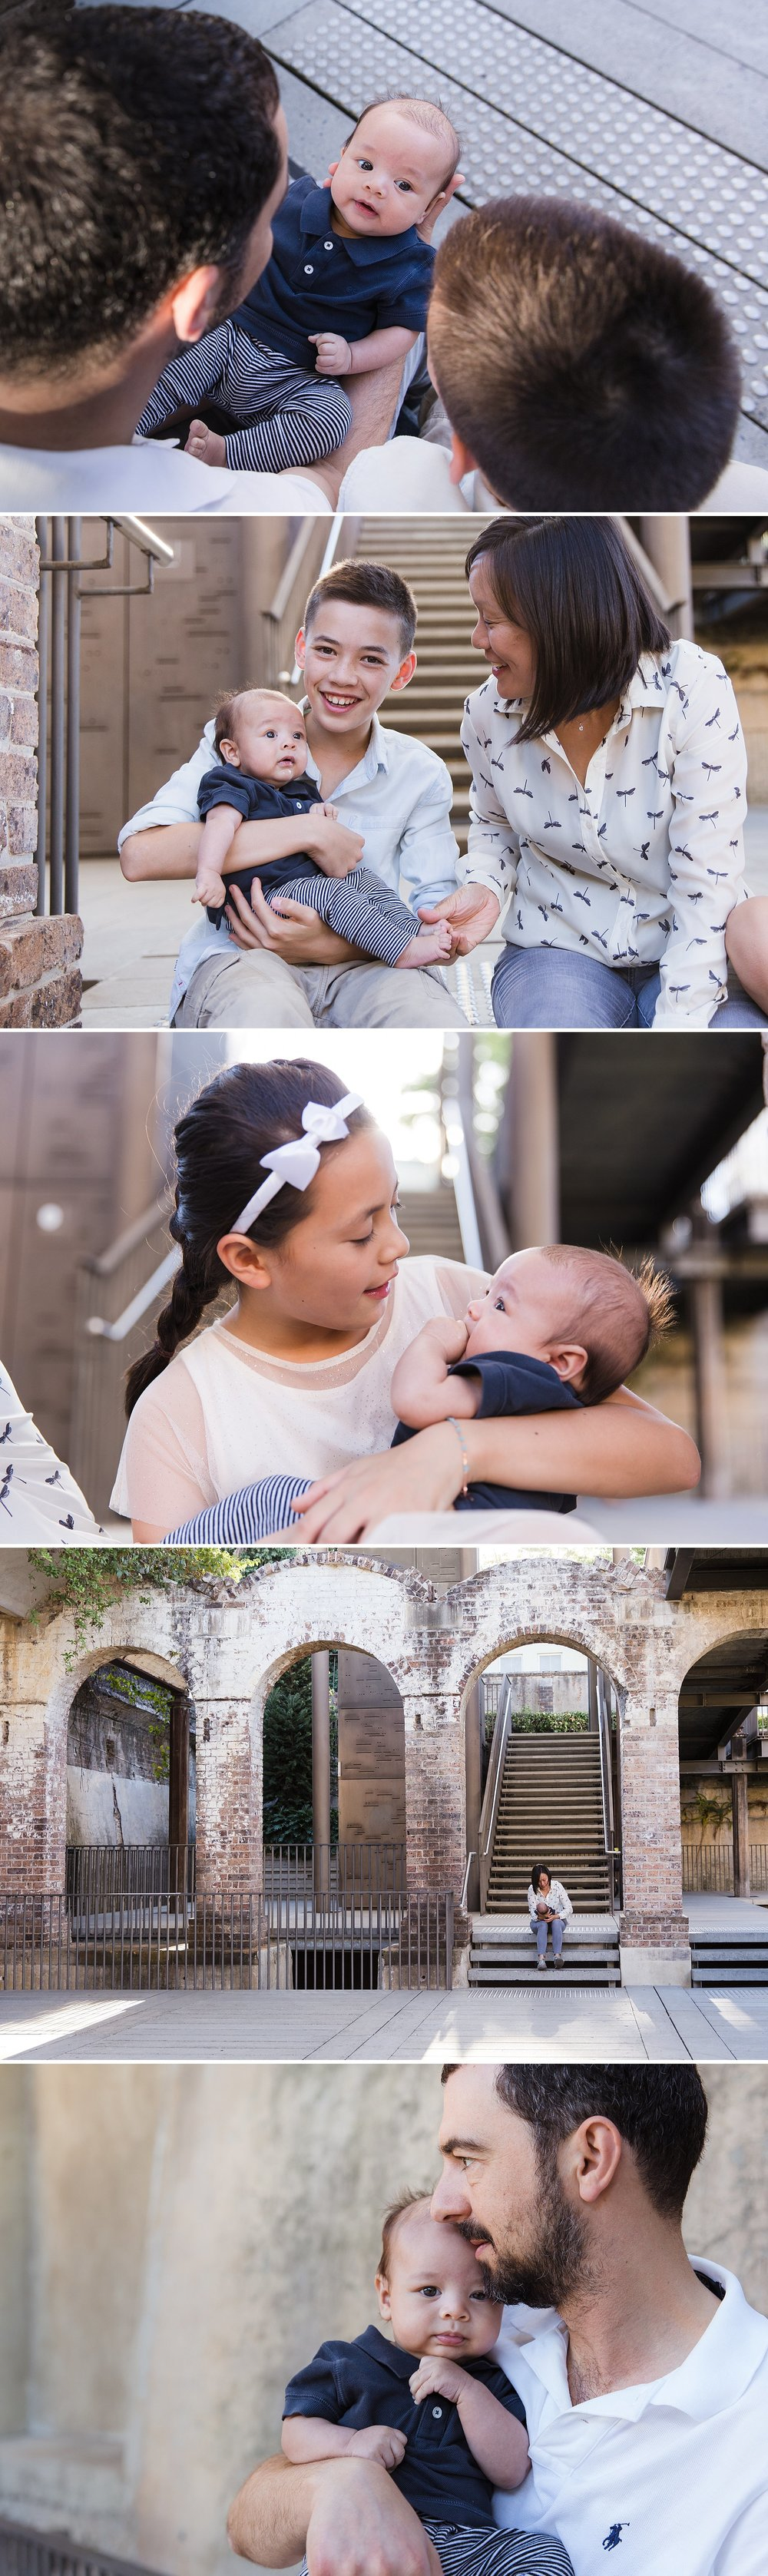 Sydney Family Photography_0005.jpg